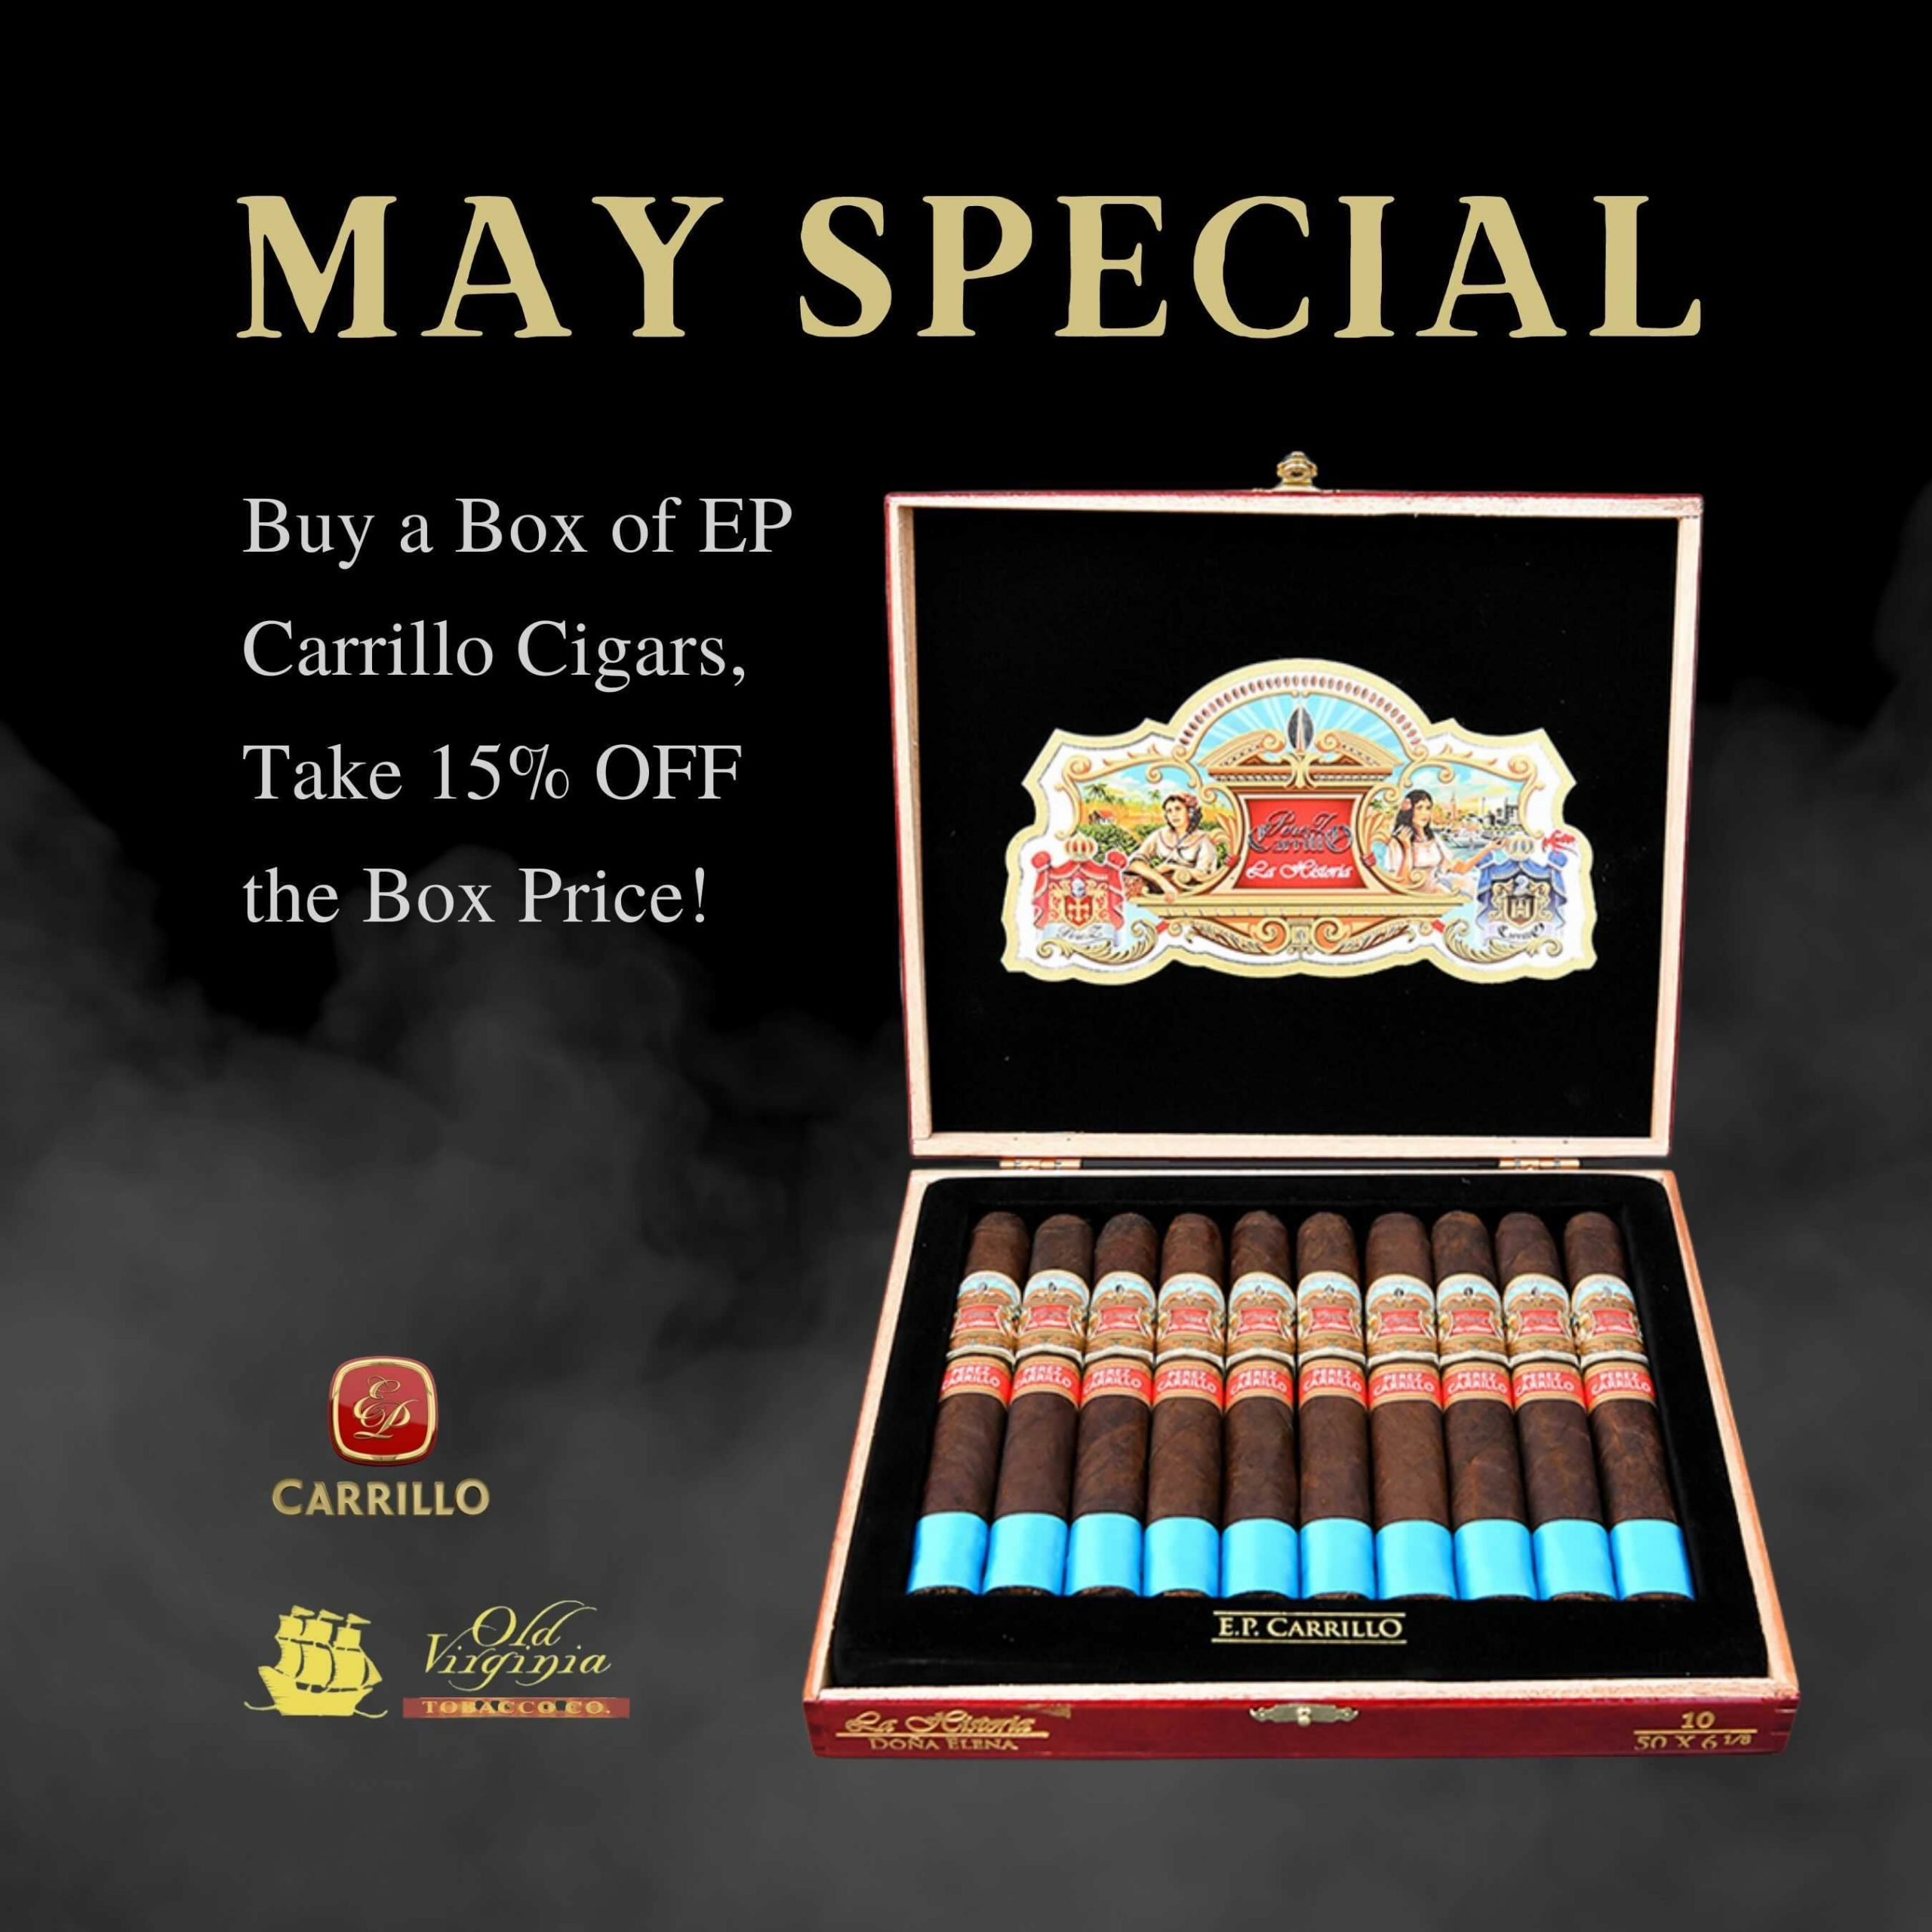 May Special: Buy a Box of EP Carrillo Cigars – take 15% off the box price!